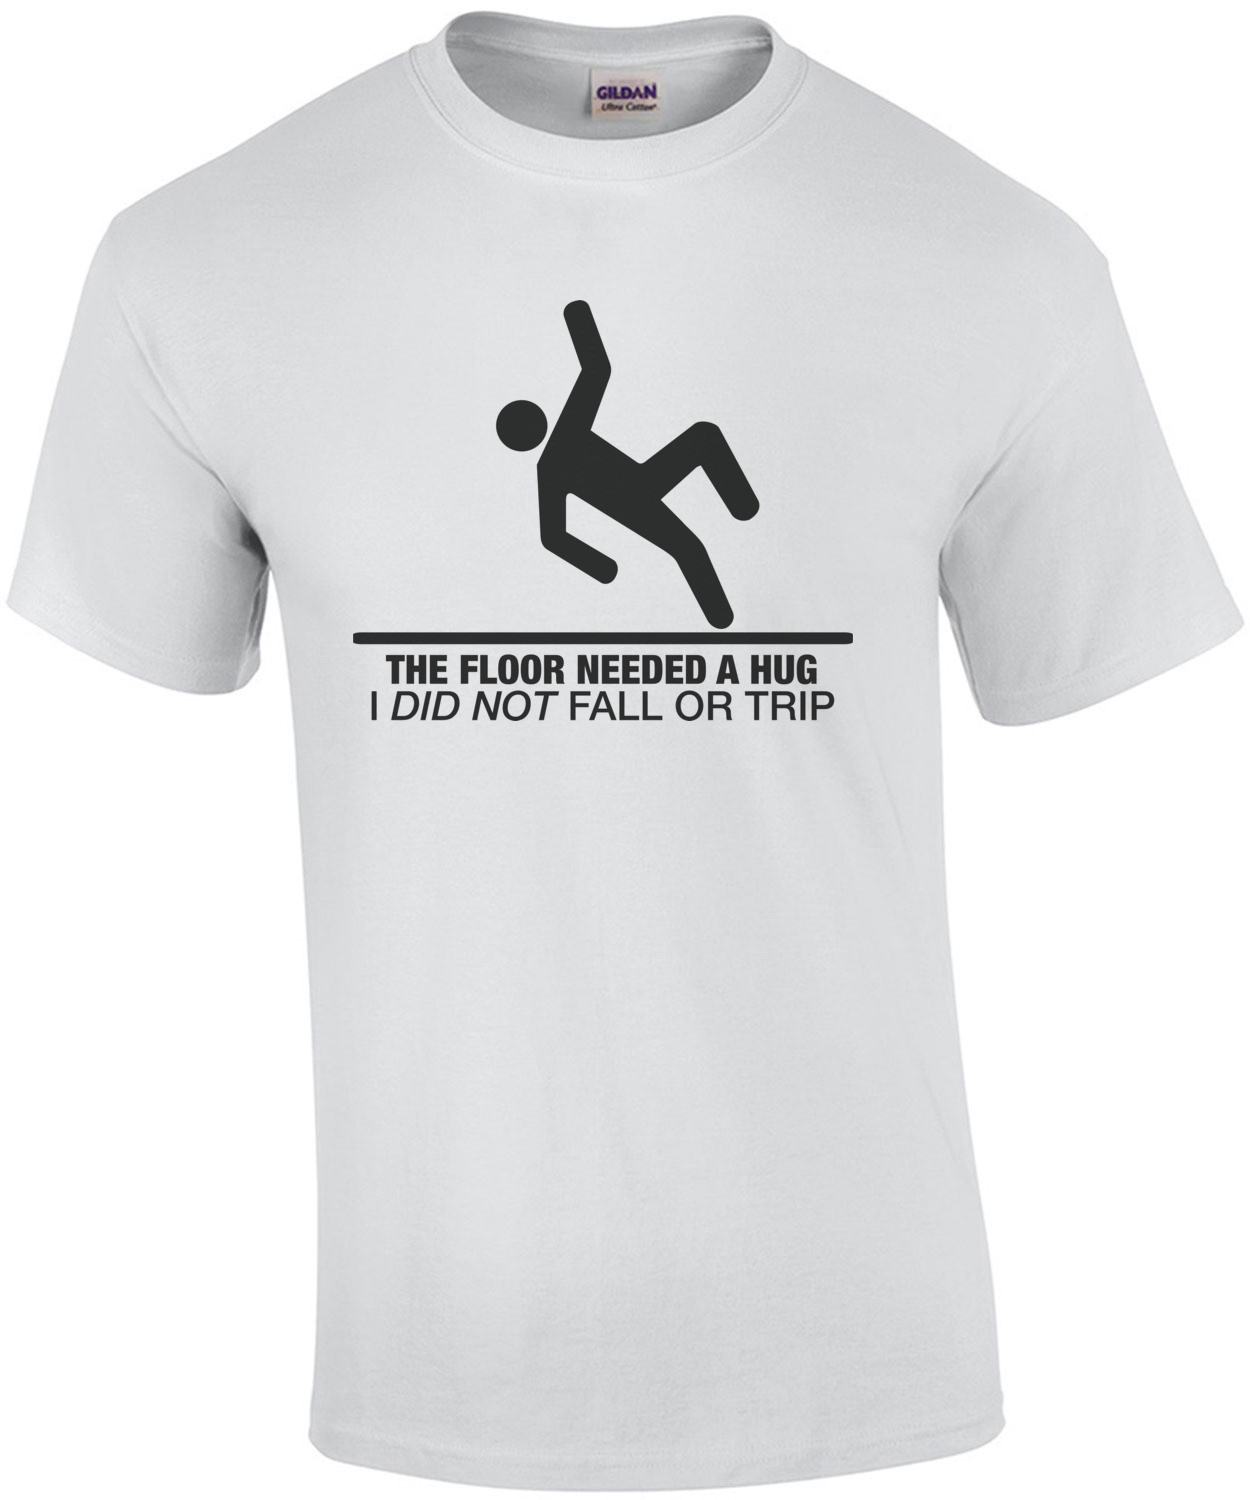 The Floor Needed A Hug, I Did Not Trip or Fall T-Shirt